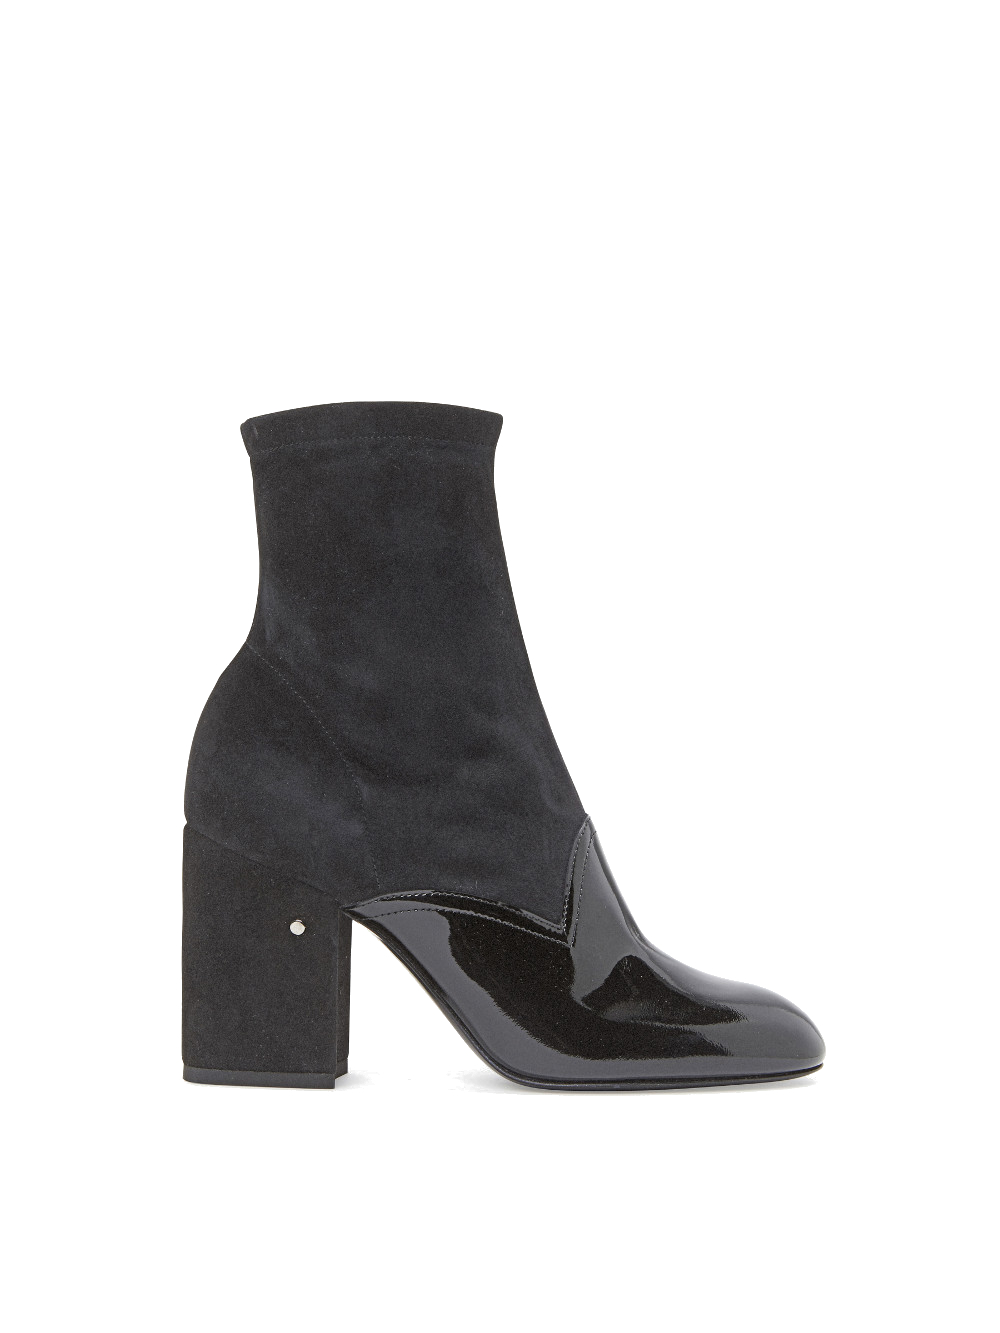 Bottines Plume - Laurence Dacade